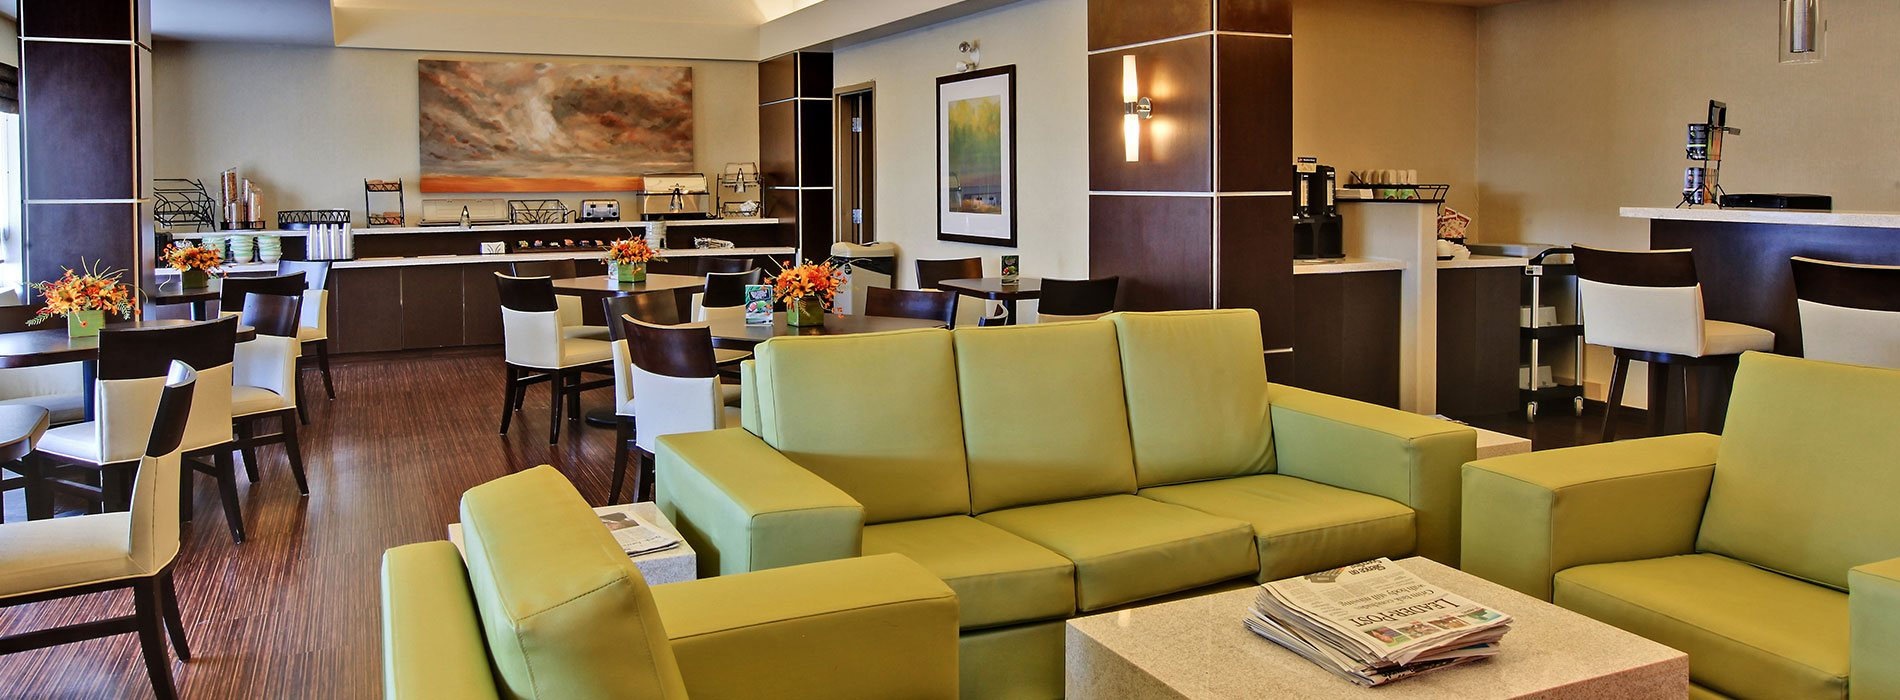 The breakfast and sitting space at d3h Home Inn & Suites Yorkton features wood grain chestnut brown hardwood floors and a long two tiered breakfast counter stocked with dining ware and stainless steel appliances.  Square eating tables and upholstered dining chairs are placed throughout the breakfasting area.  In the sitting area, modern cube shaped coffee and end tables flank a chartreuse green vinyl sofa and armchair set.